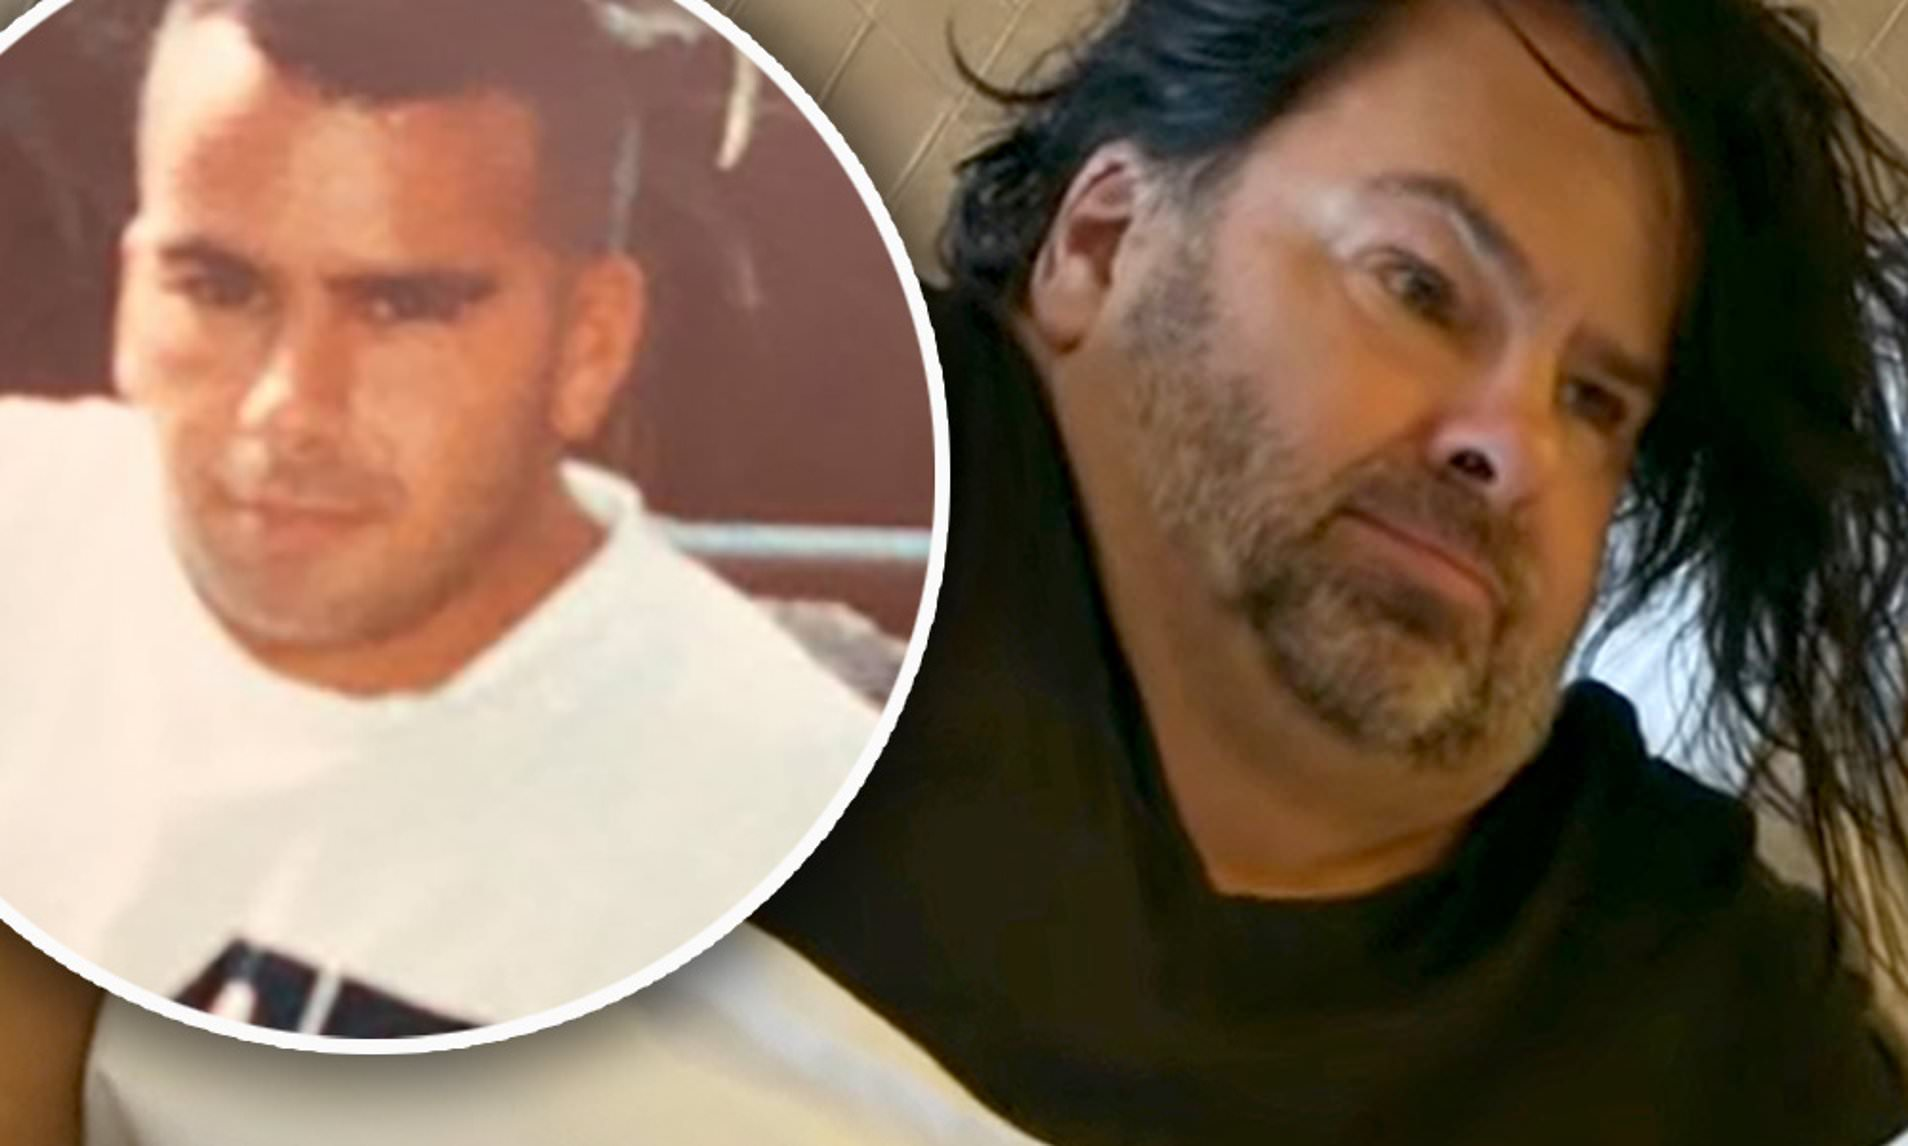 90 Day Fiance S Big Ed Used To Look Like A Model And We Have The